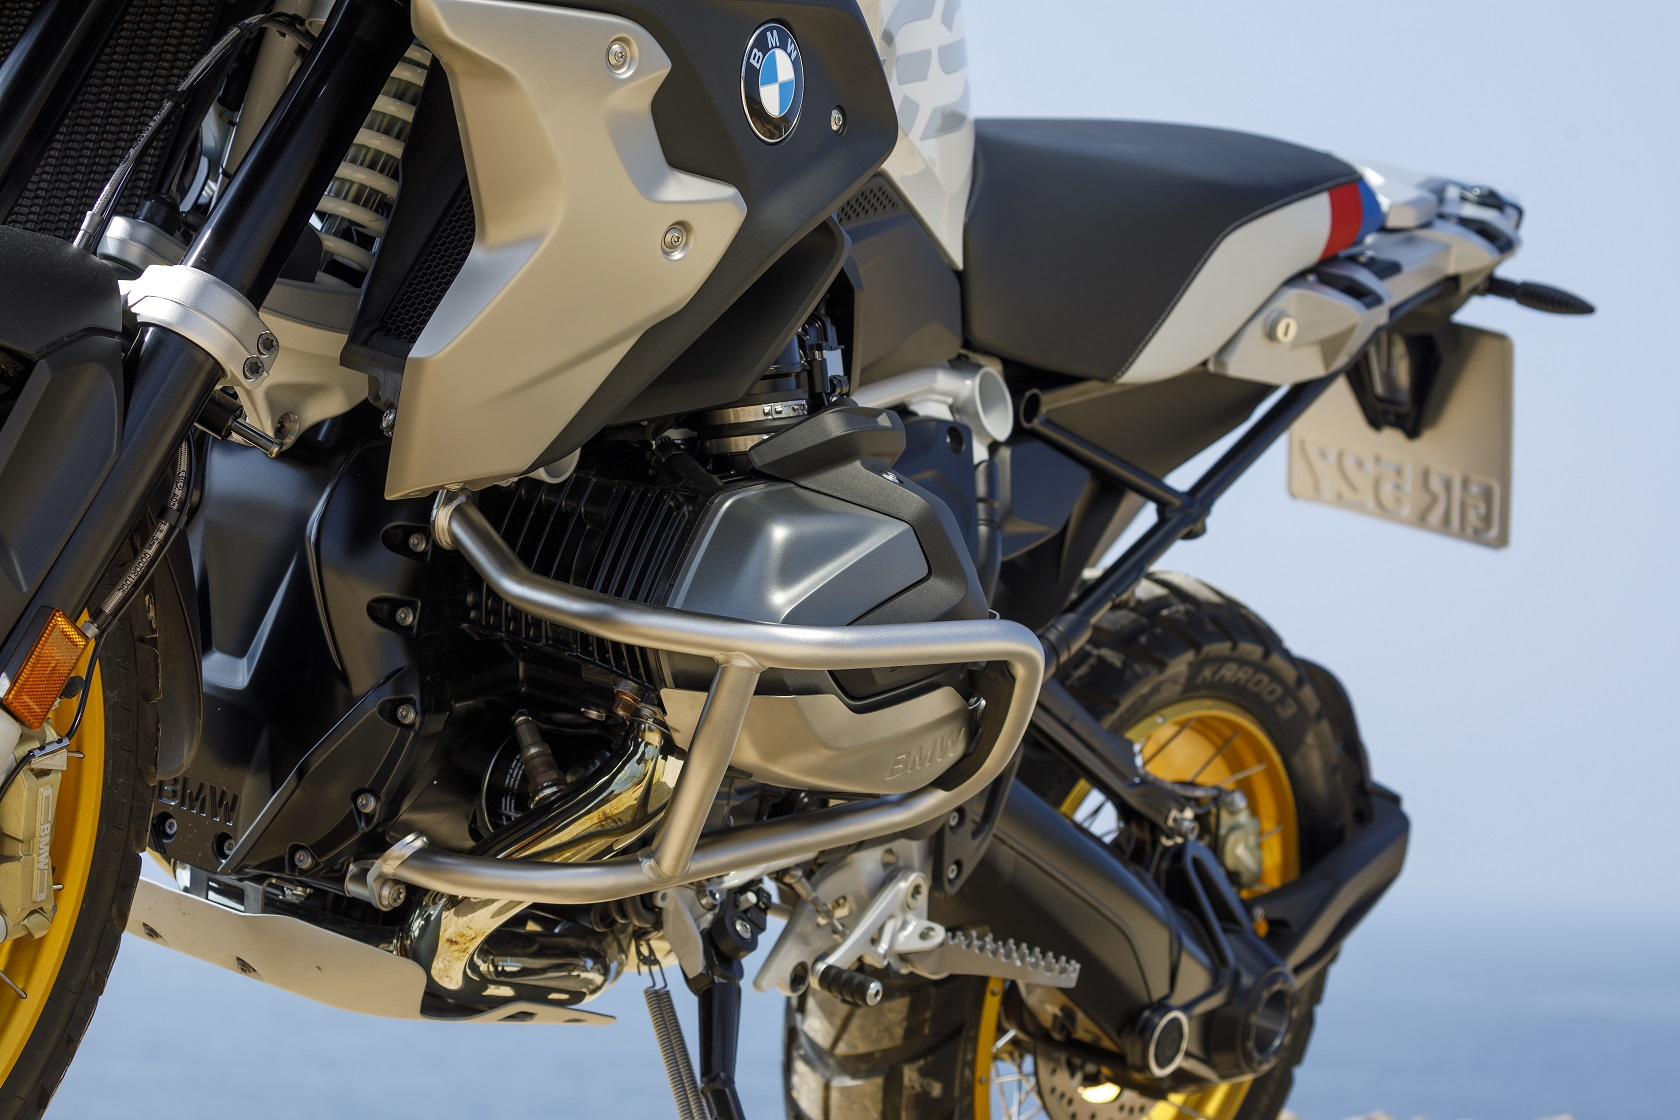 2019 Bmw R 1250 Gs Bmw Motorcycles Of San Francisco San